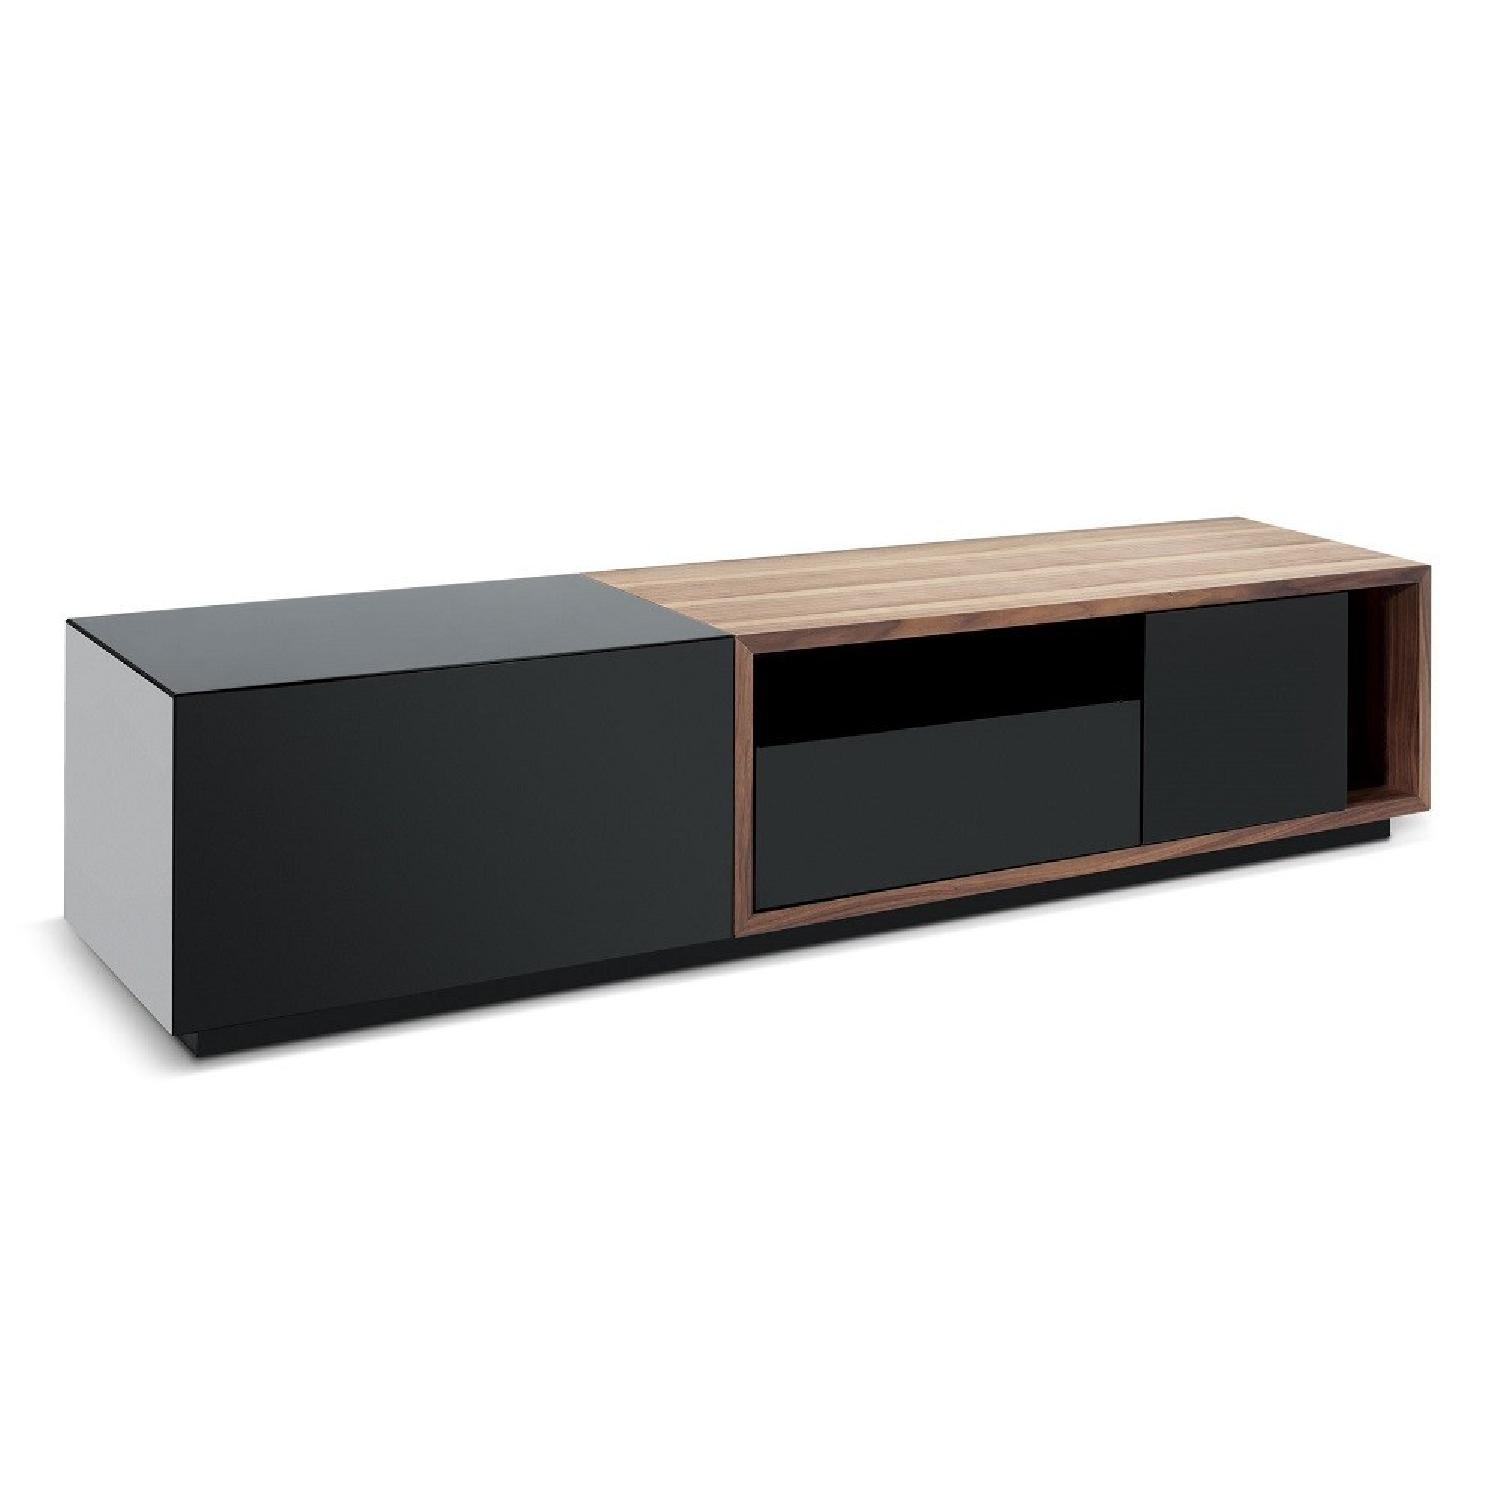 Tv Sideboard Modern Modern Tv Stand In Black Lacquer Walnut Finish